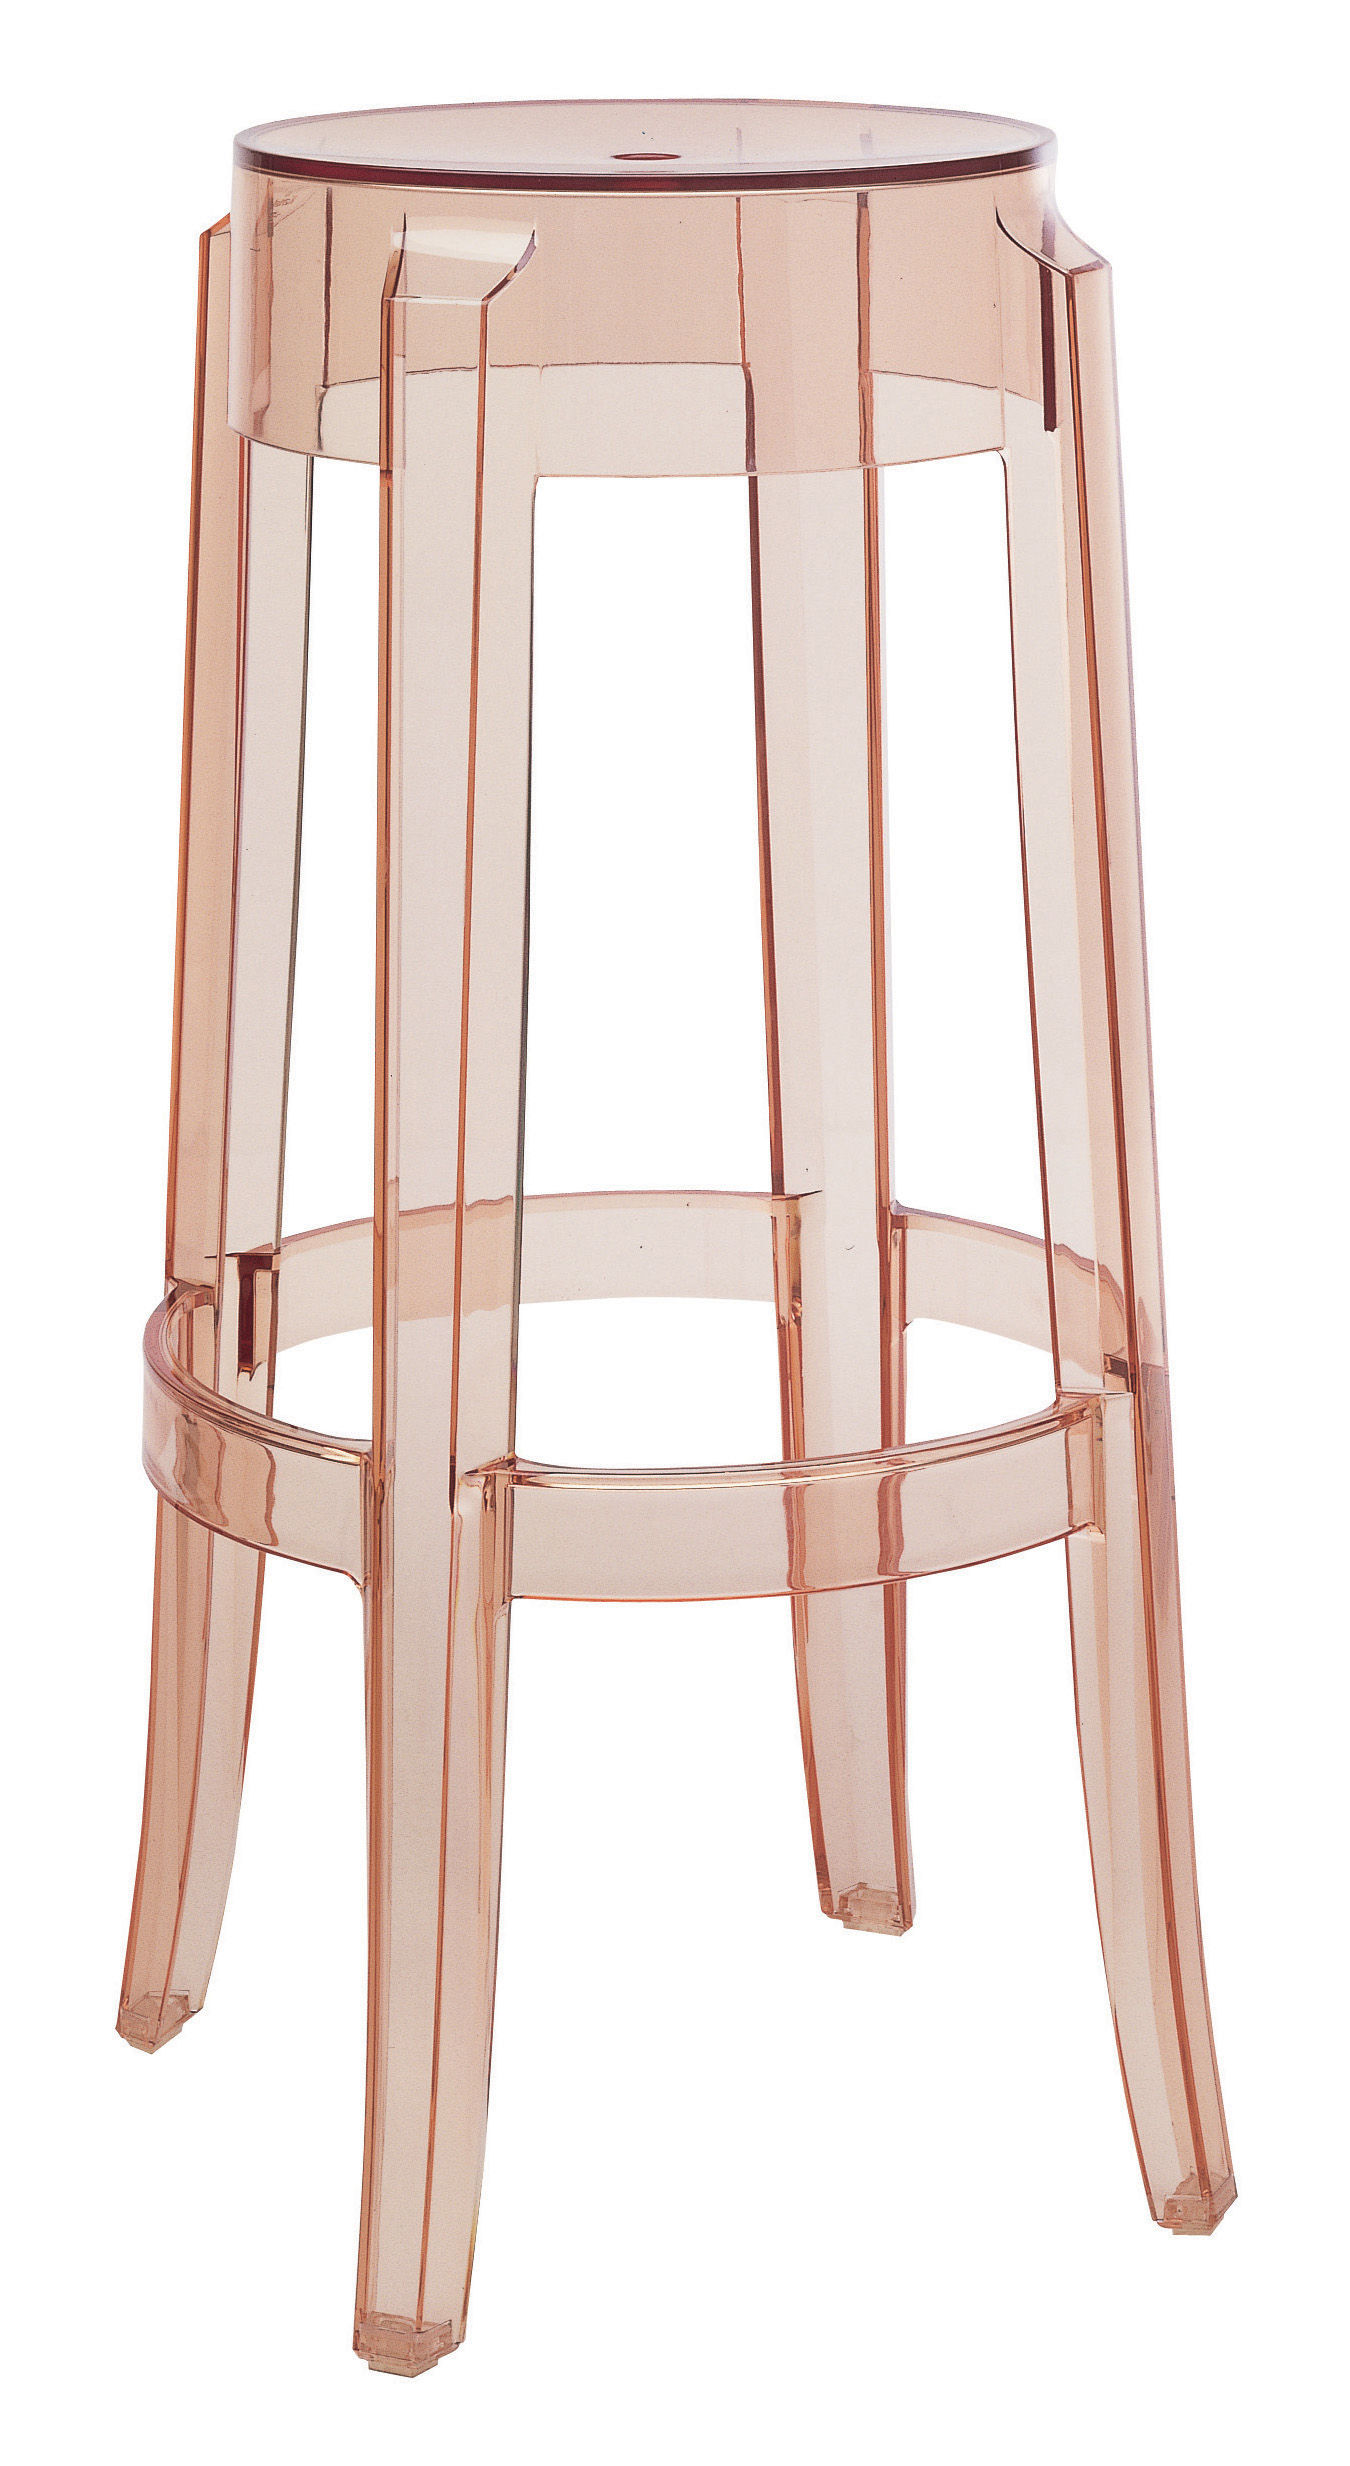 Tabouret haut empilable charles ghost h 75 cm plastique rose saumon k - Tabouret plastique empilable ...